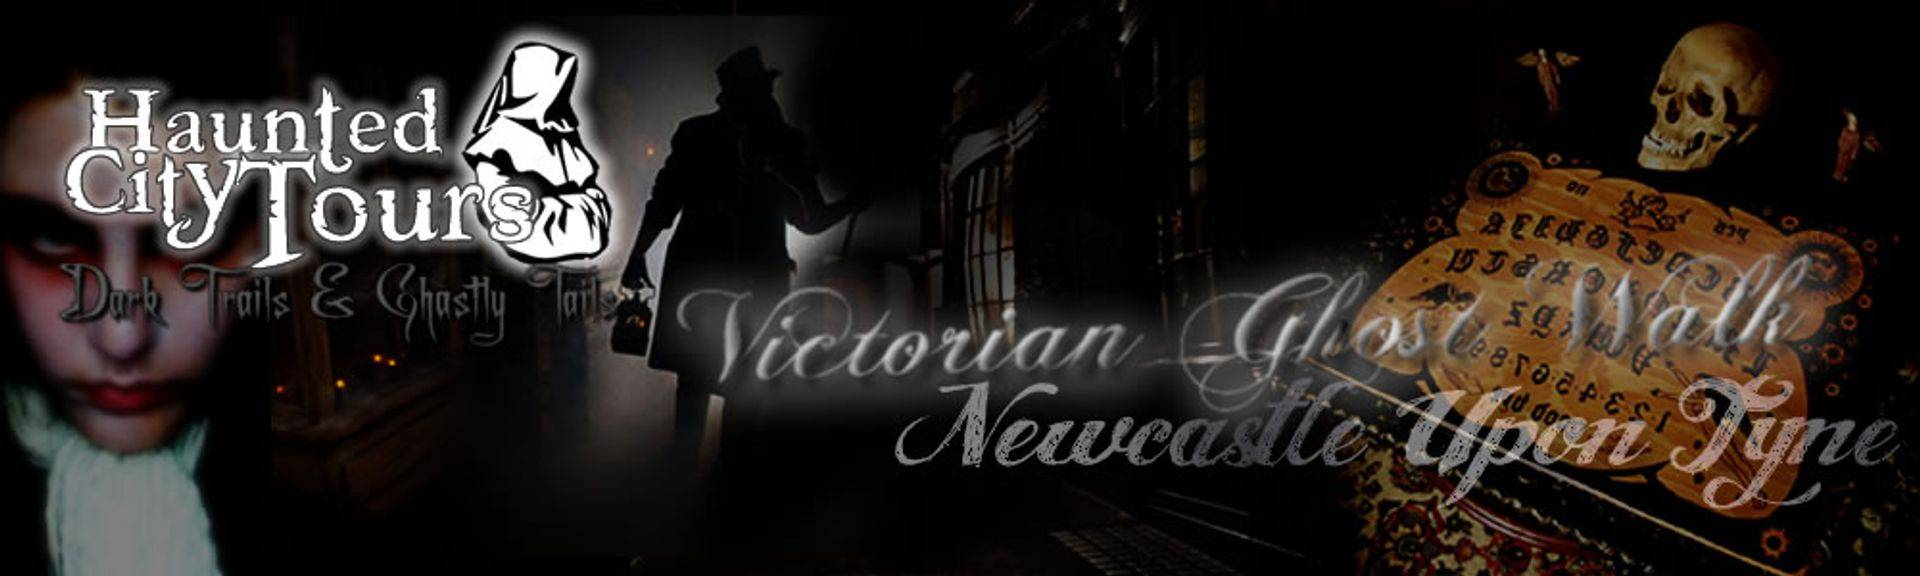 Victorian Ghost Walks  Haunted City Tours Newcastle